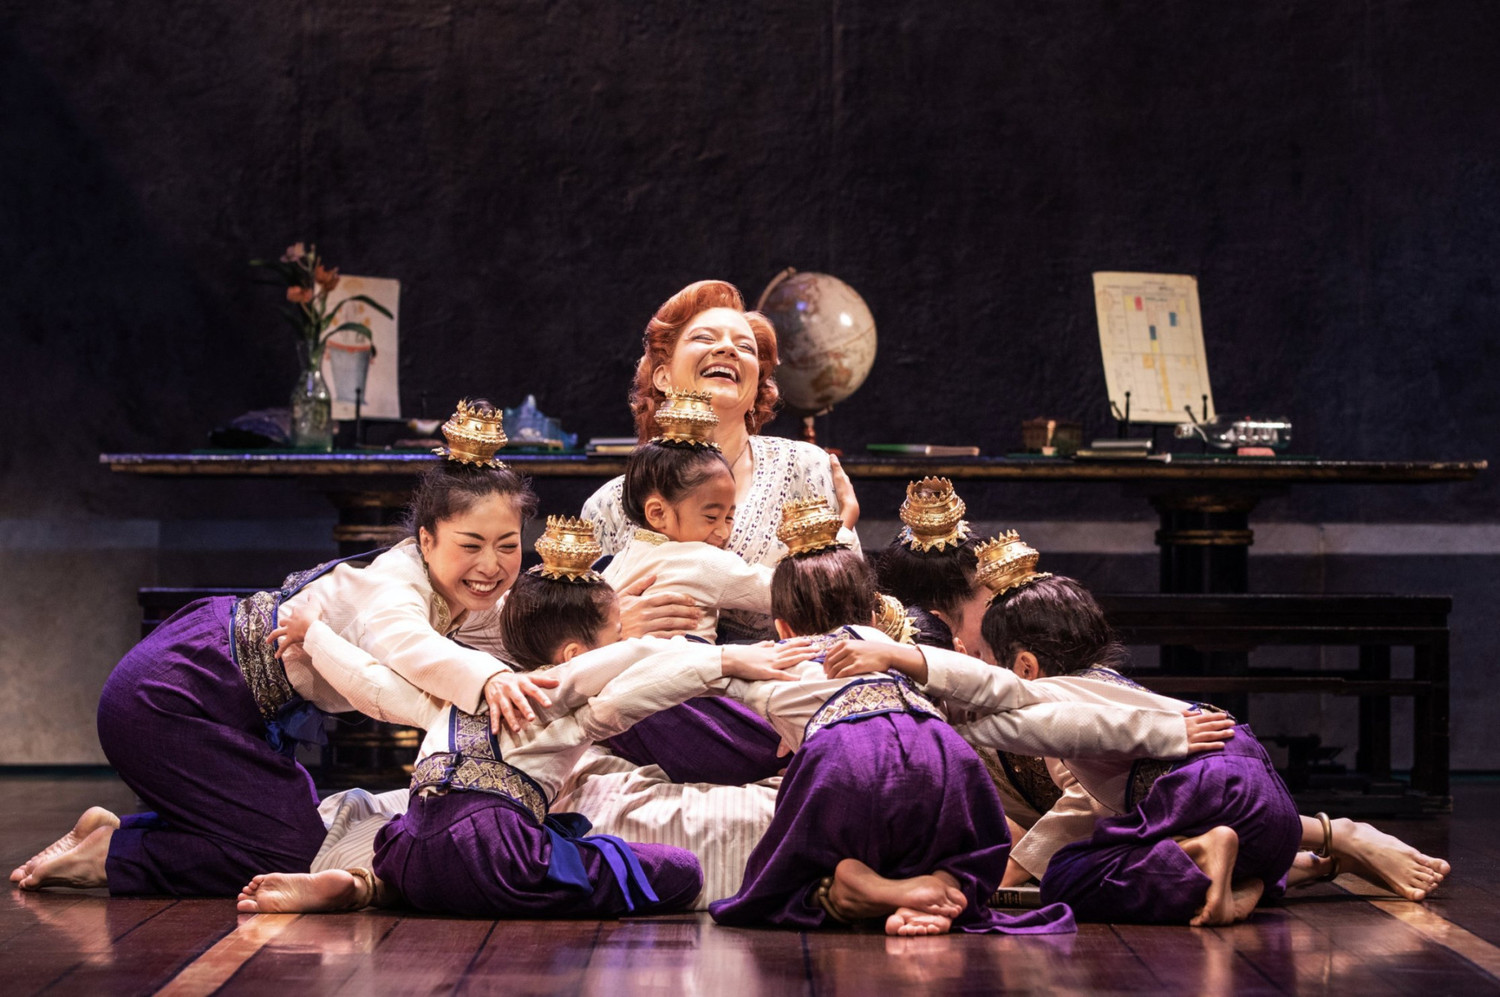 BWW Review: THE KING AND I Does Justice to a Classic at Milwaukee's Marcus Center